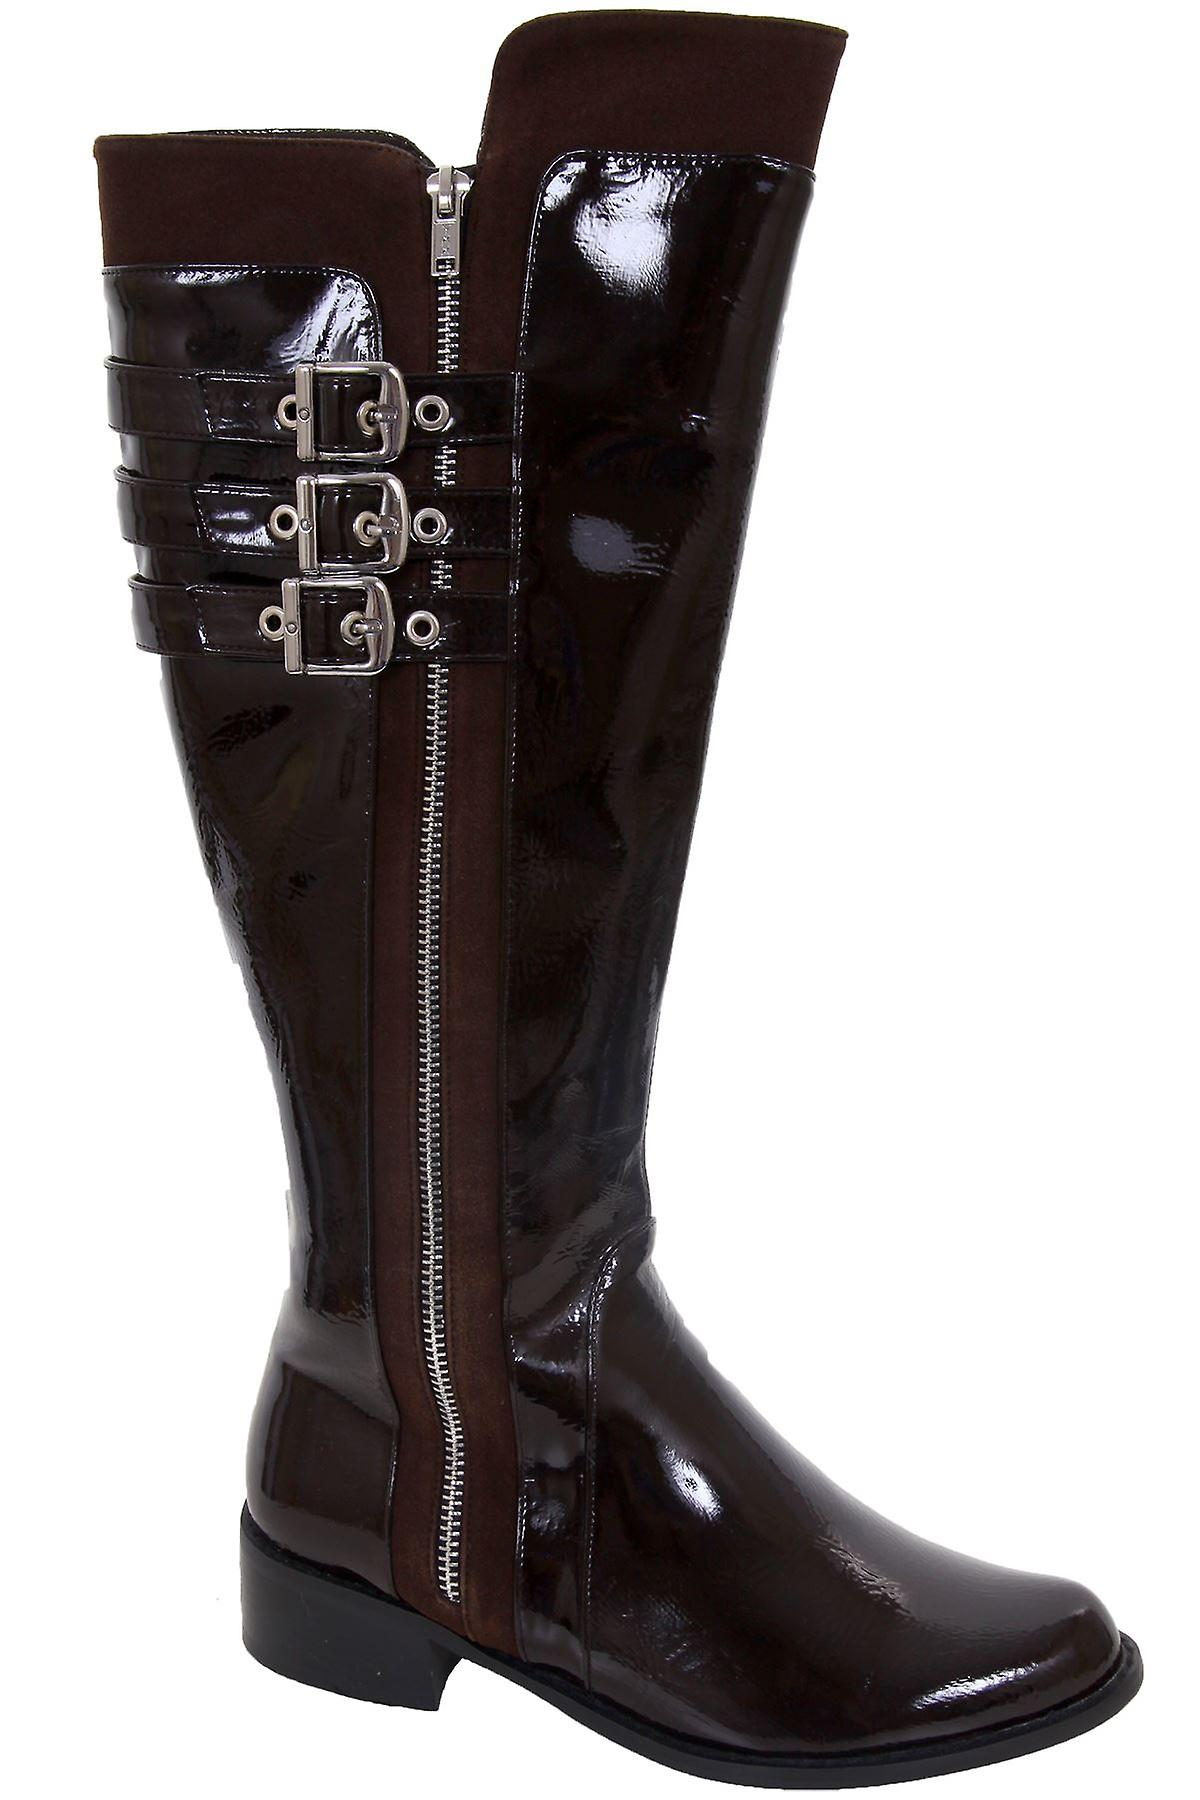 Ladies Patent Triple Buckle Strap Low Heel Women's Knee High Boots Shoes